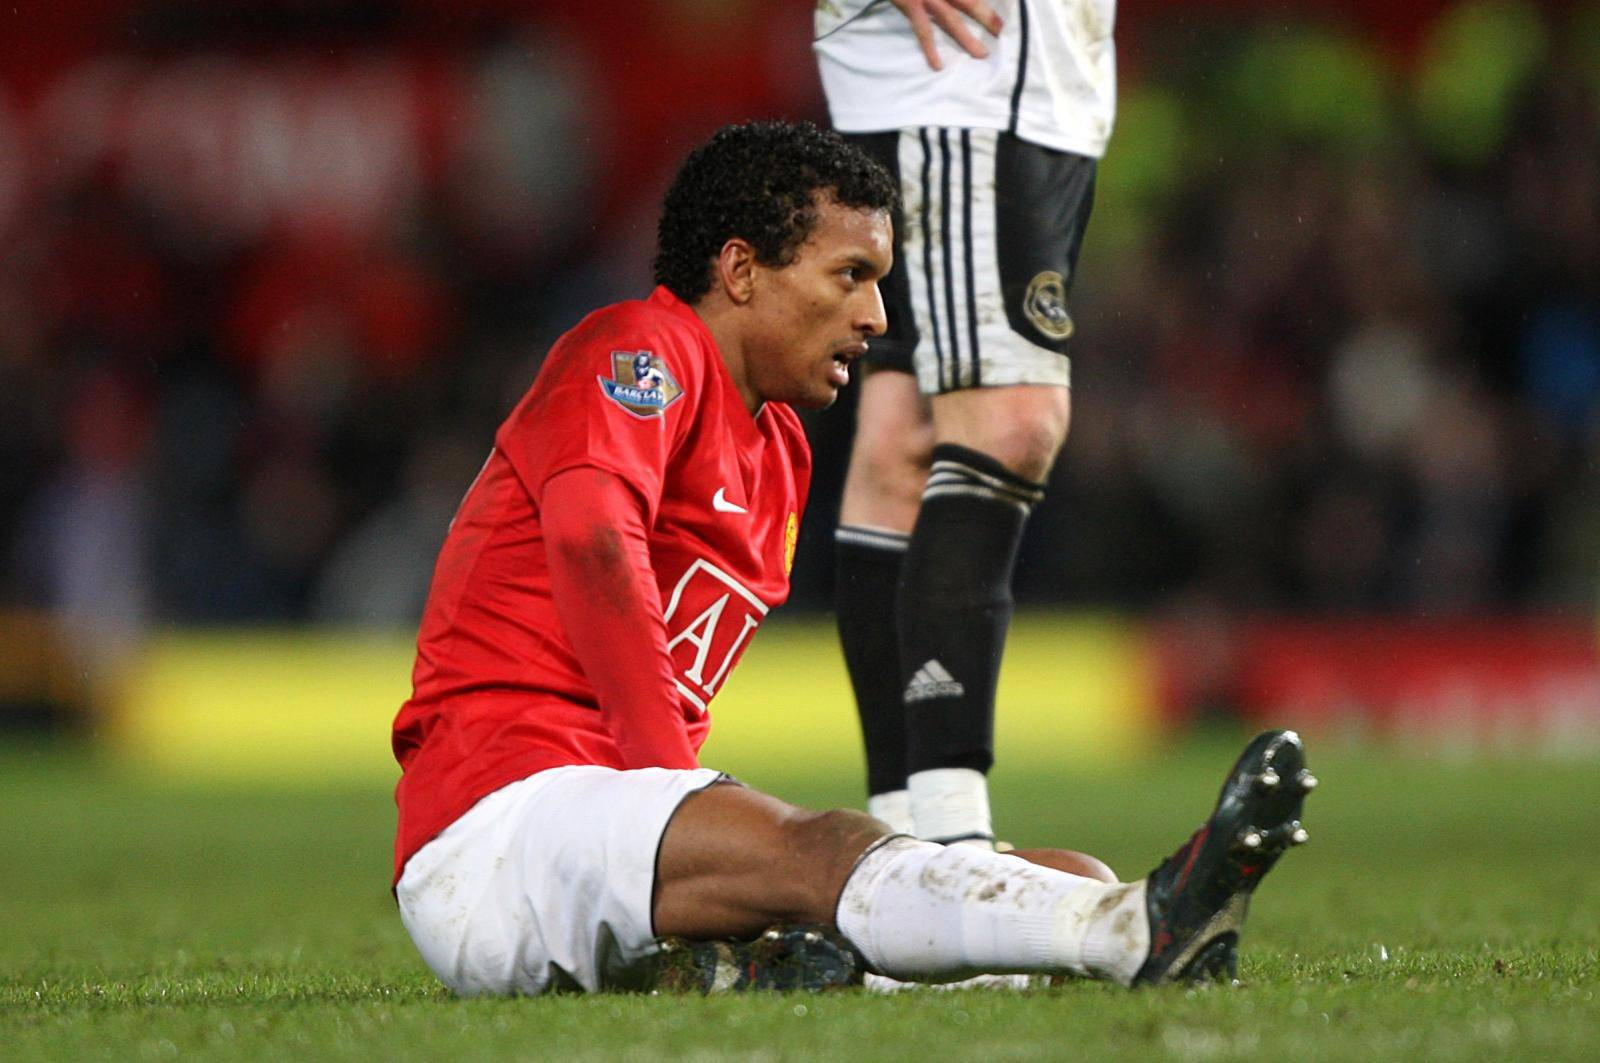 Soccer - Carling Cup - Semi Final - Second Leg - Manchester United v Derby County - Old Trafford